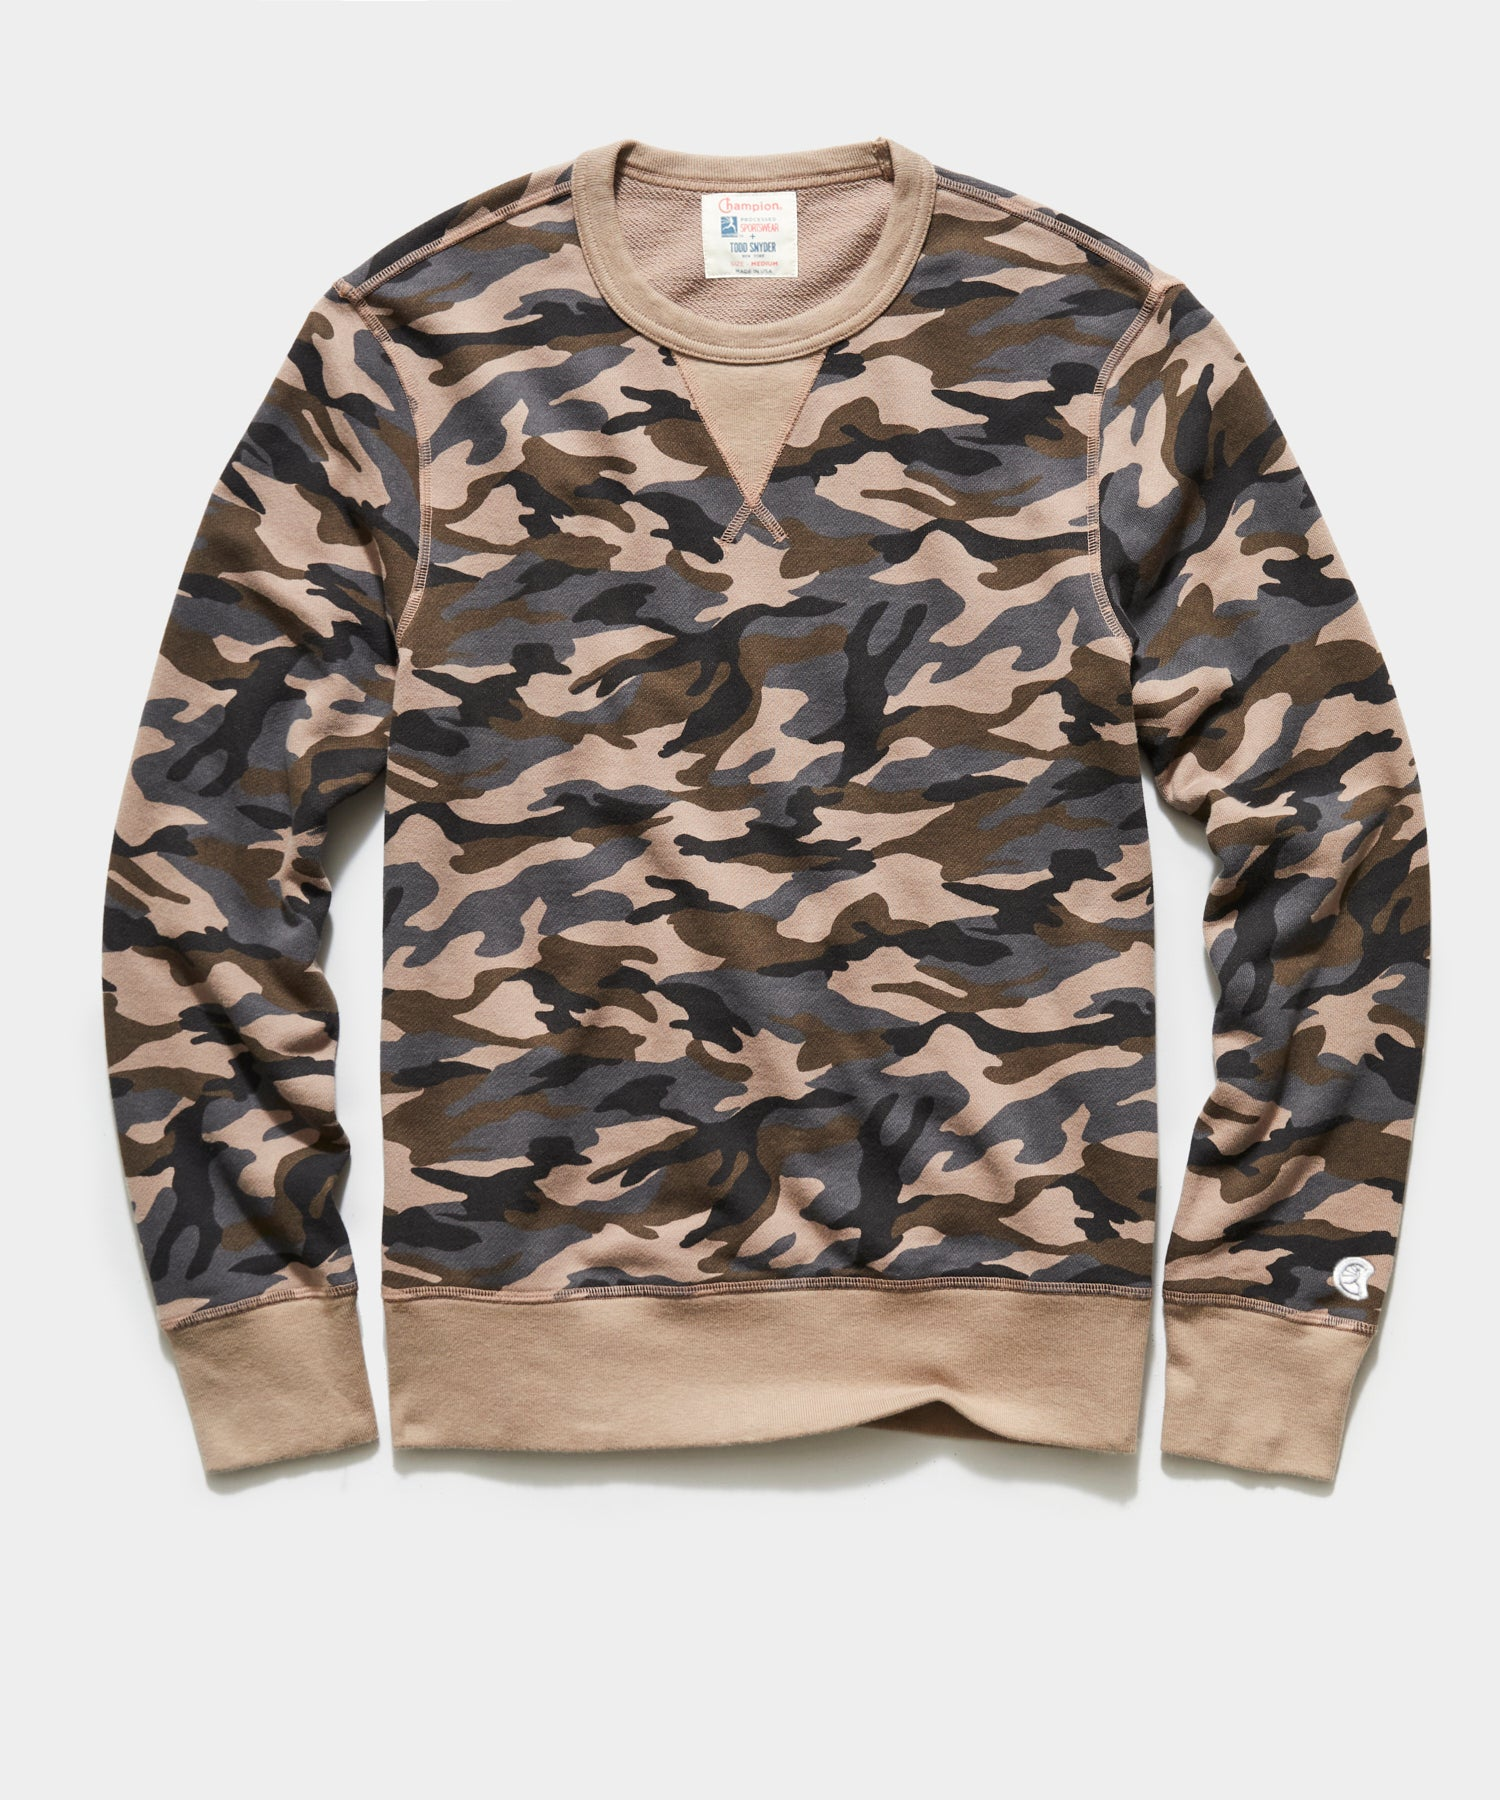 Camo Crewneck Sweatshirt in Tan